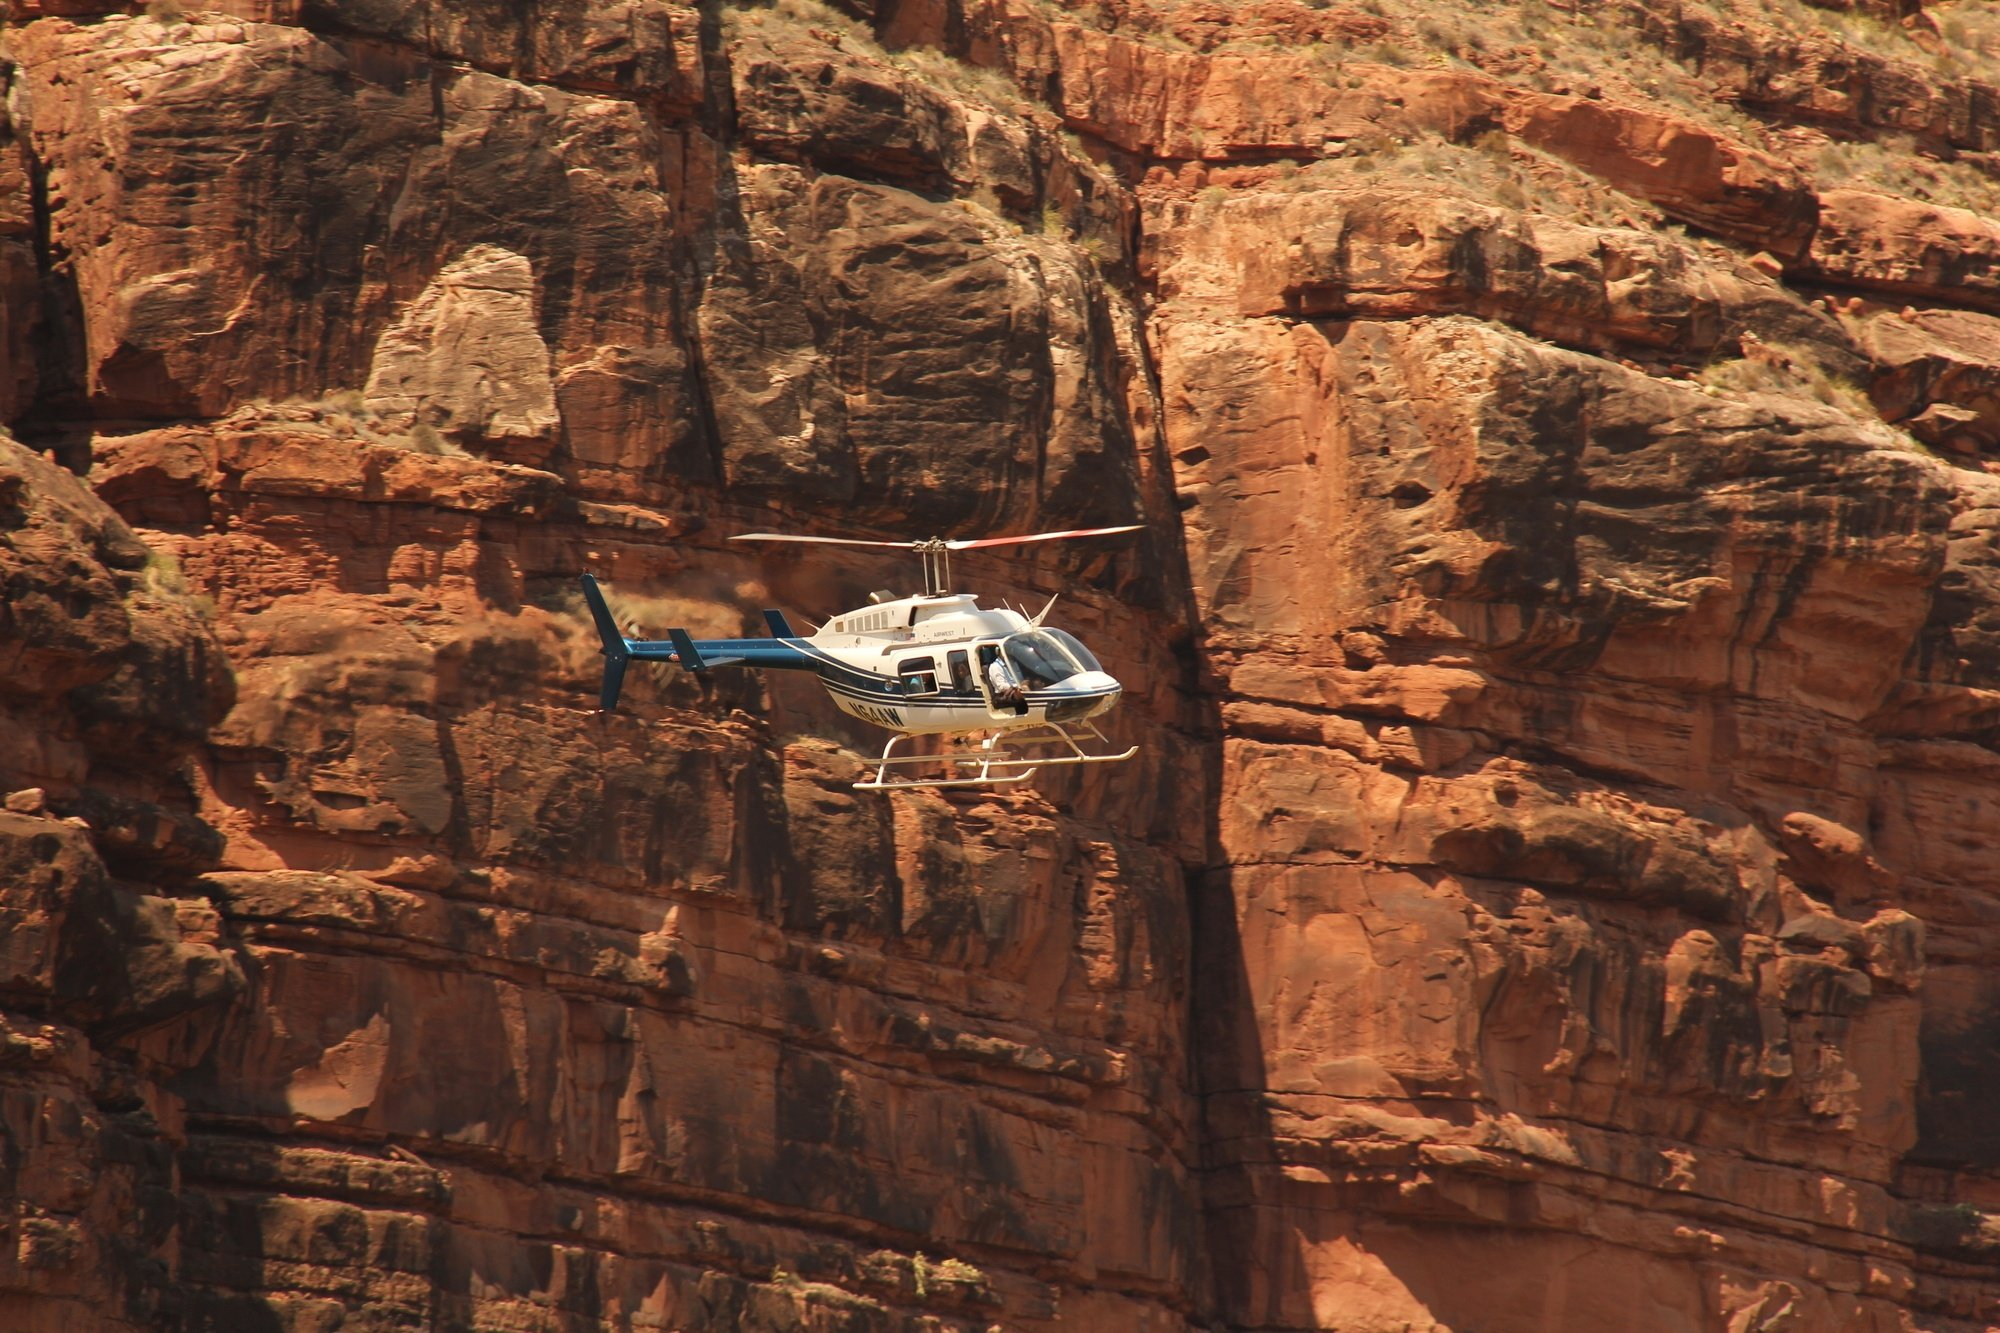 Helicopter at the Grand Canyon